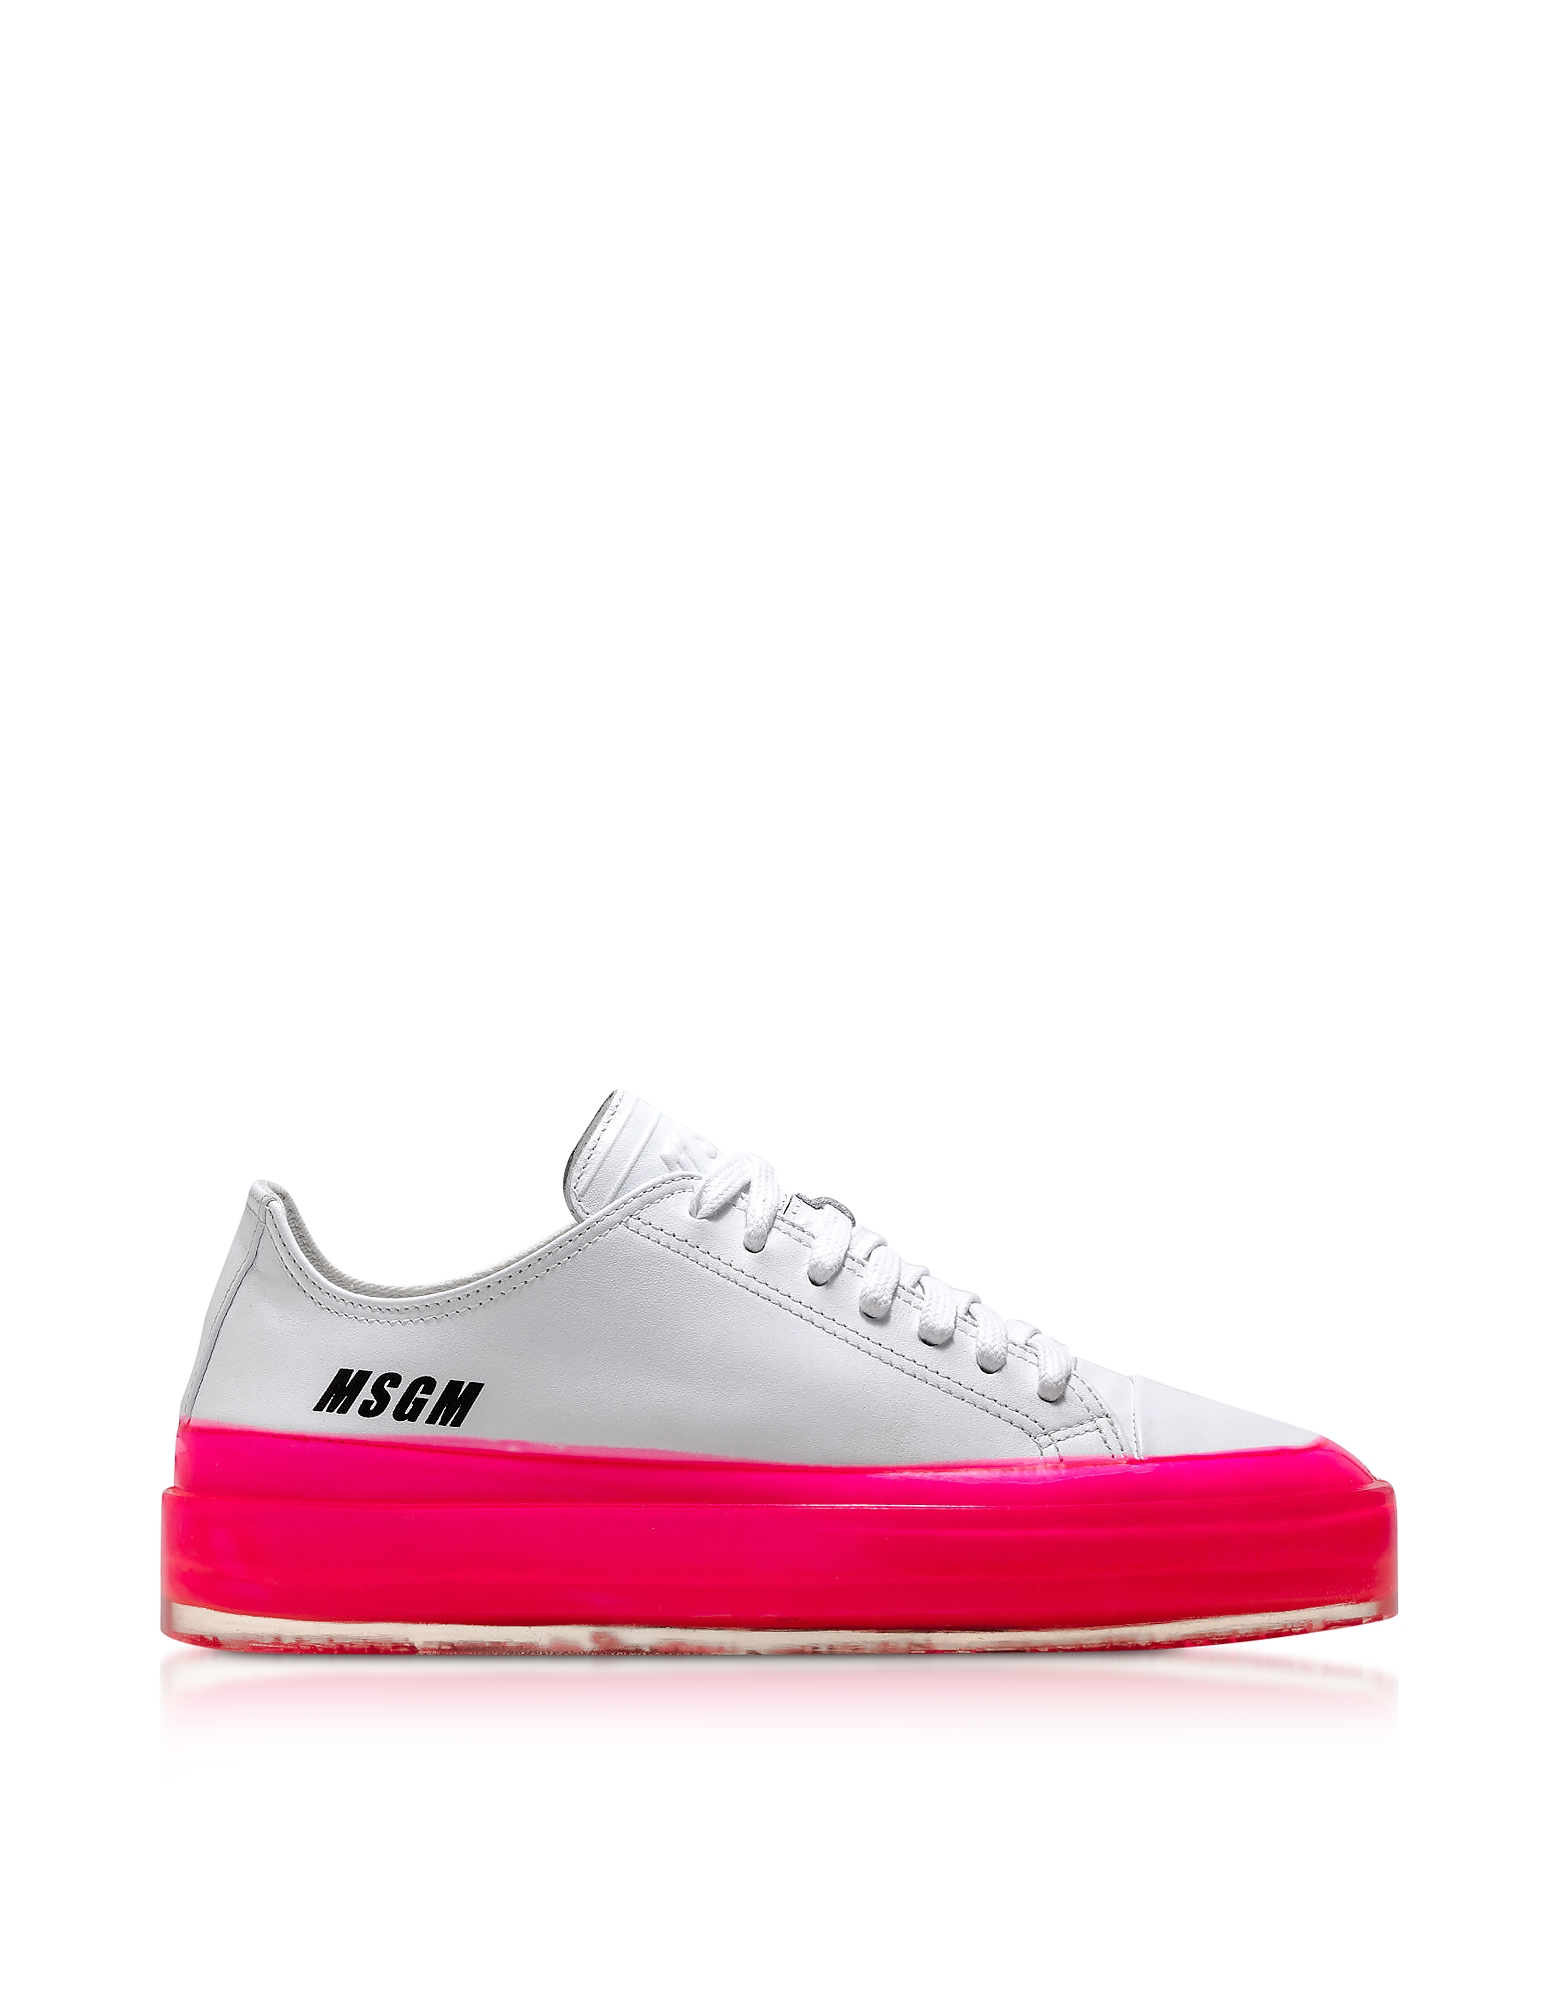 MSGM Fuchsia Floating Sneakers